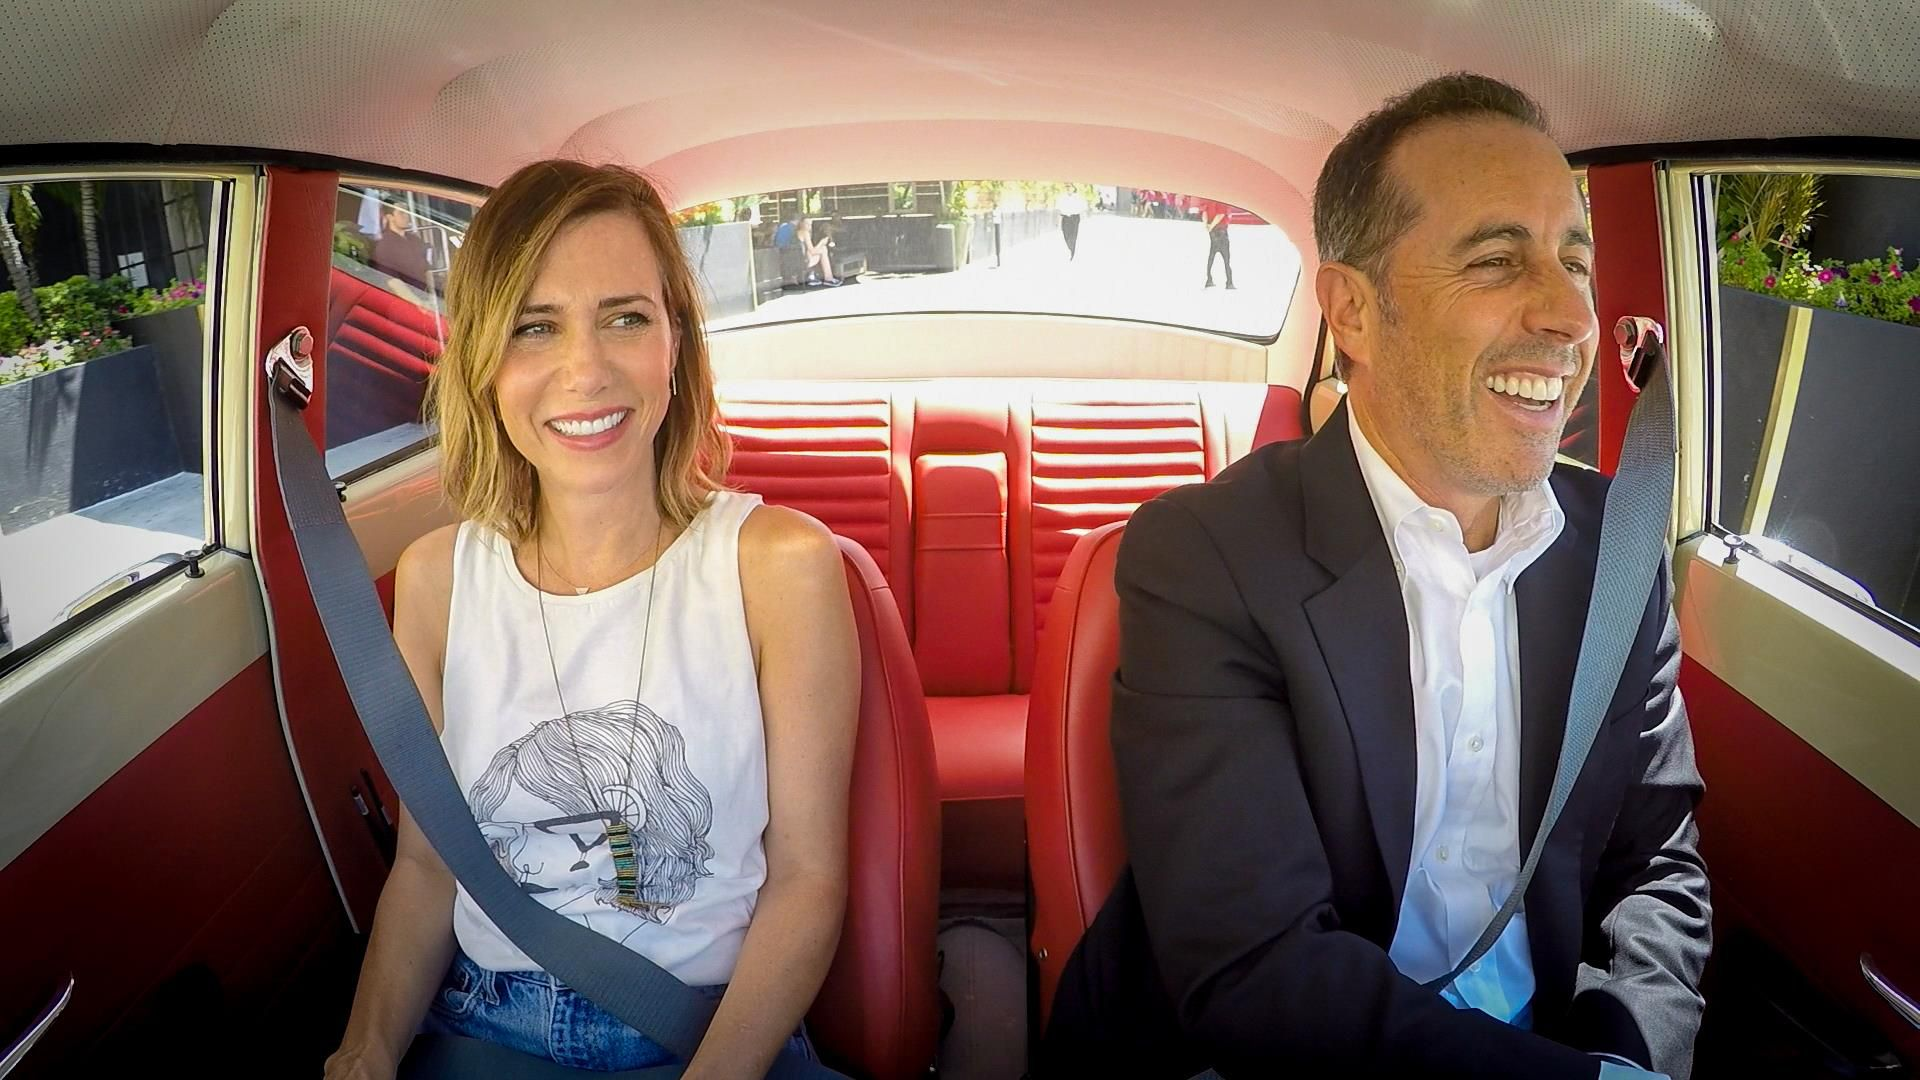 Comedians in Cars Getting Coffee, la recensione dello show di Jerry Seinfeld presente su Netflix